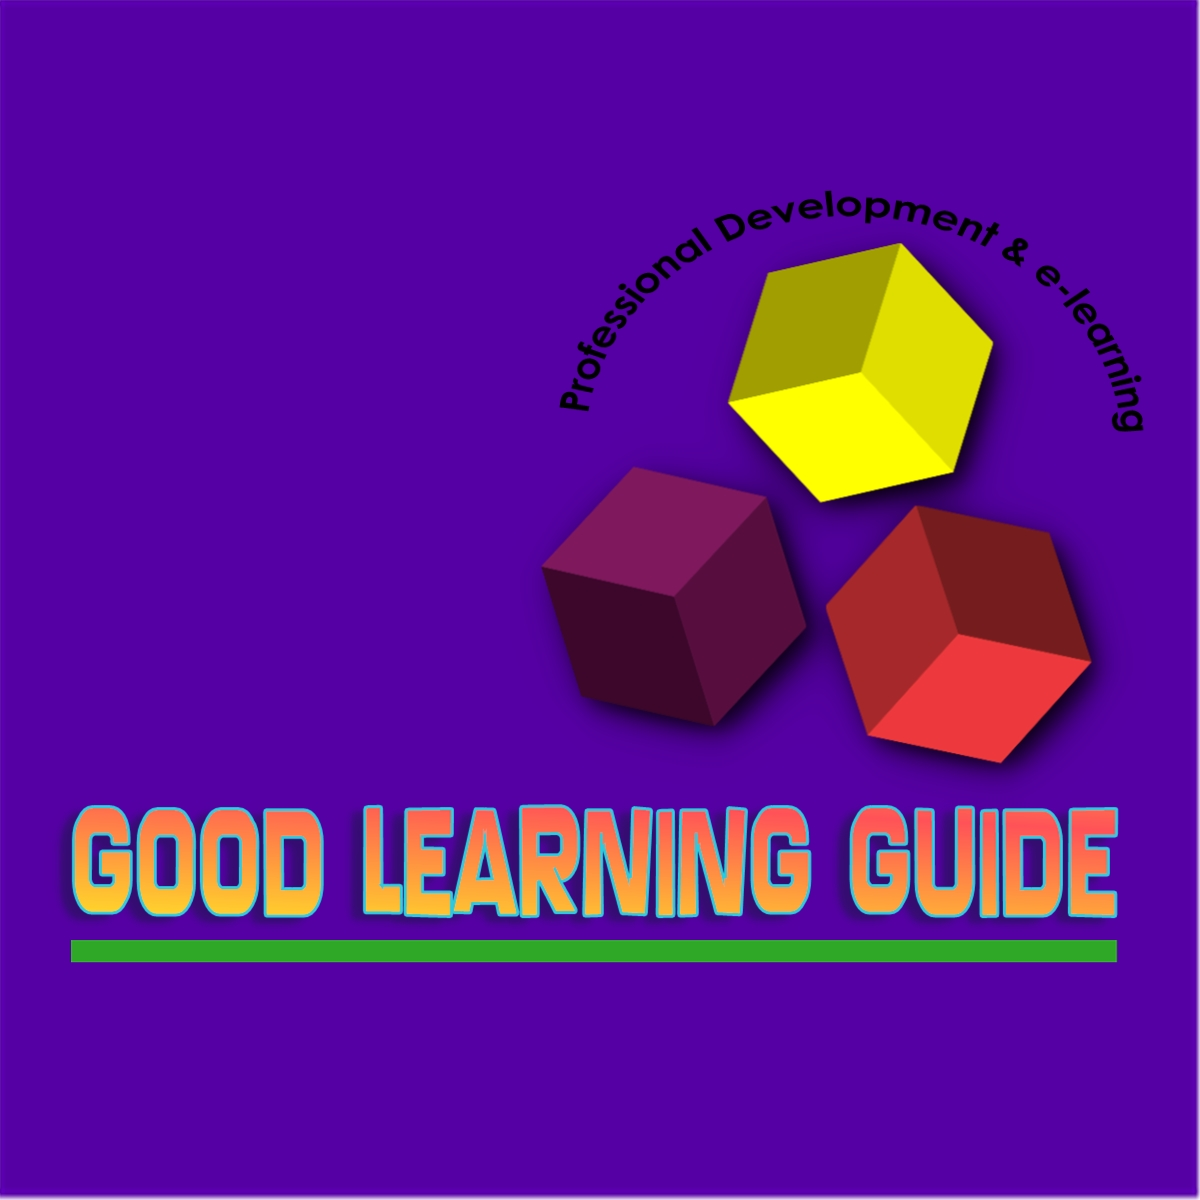 Logo Design by Joseph calunsag Cagaanan - Entry No. 50 in the Logo Design Contest Learning guide logo.